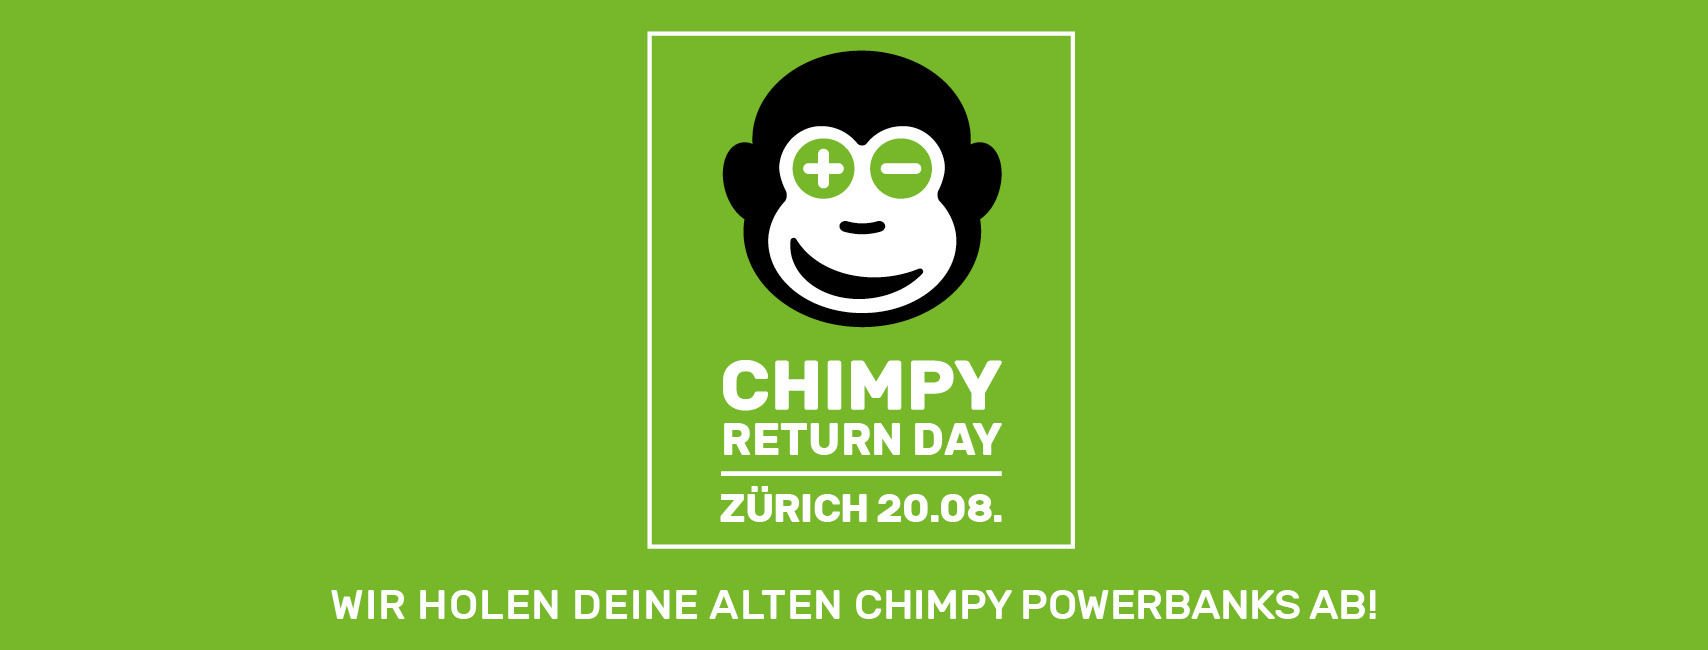 Chimpy-Returnday-Facebook-Titelbild